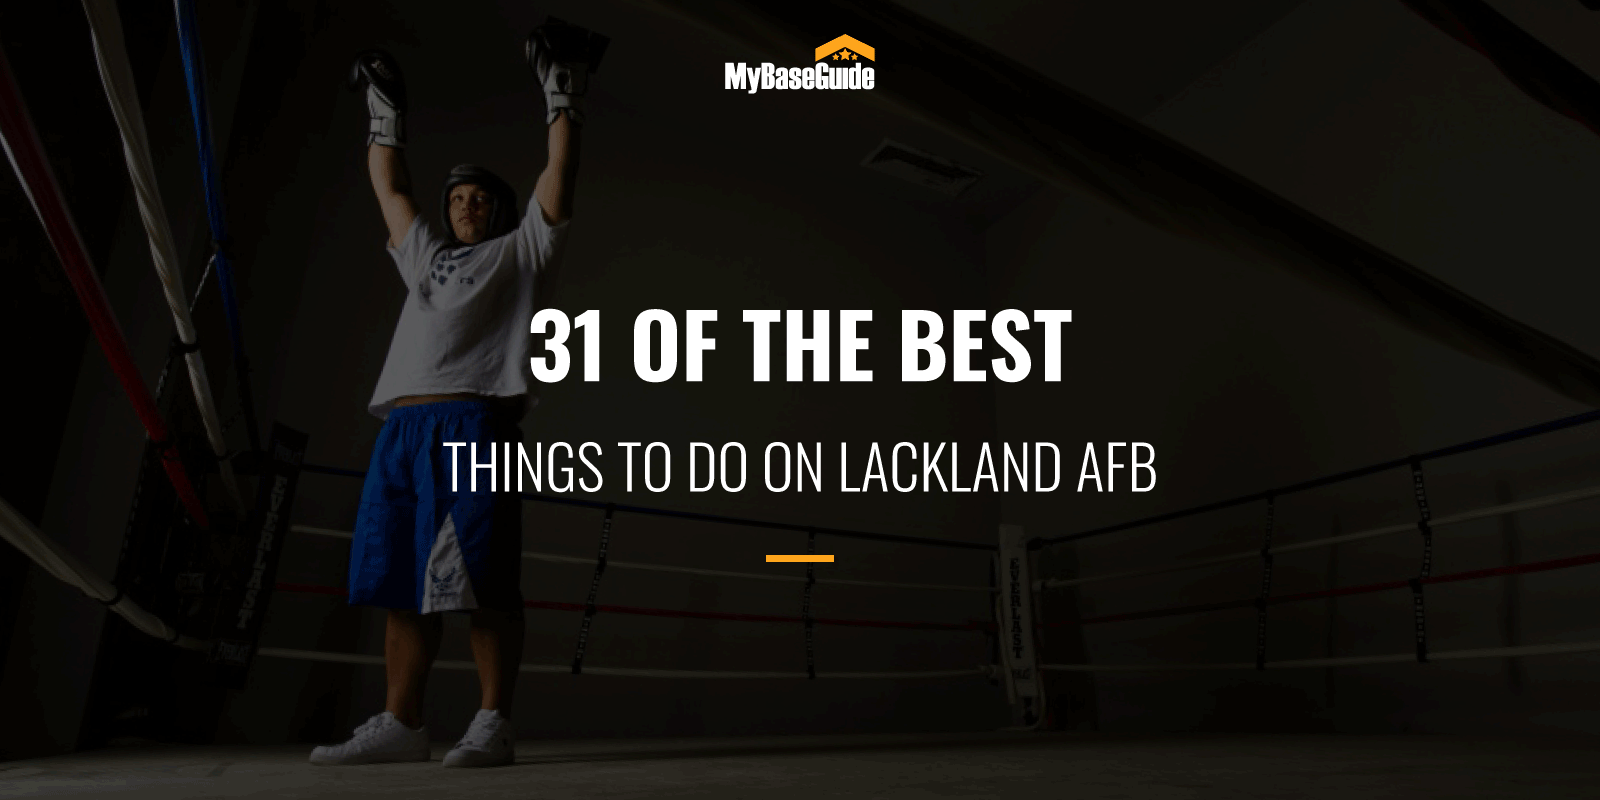 Best Things To Do Near Lackland